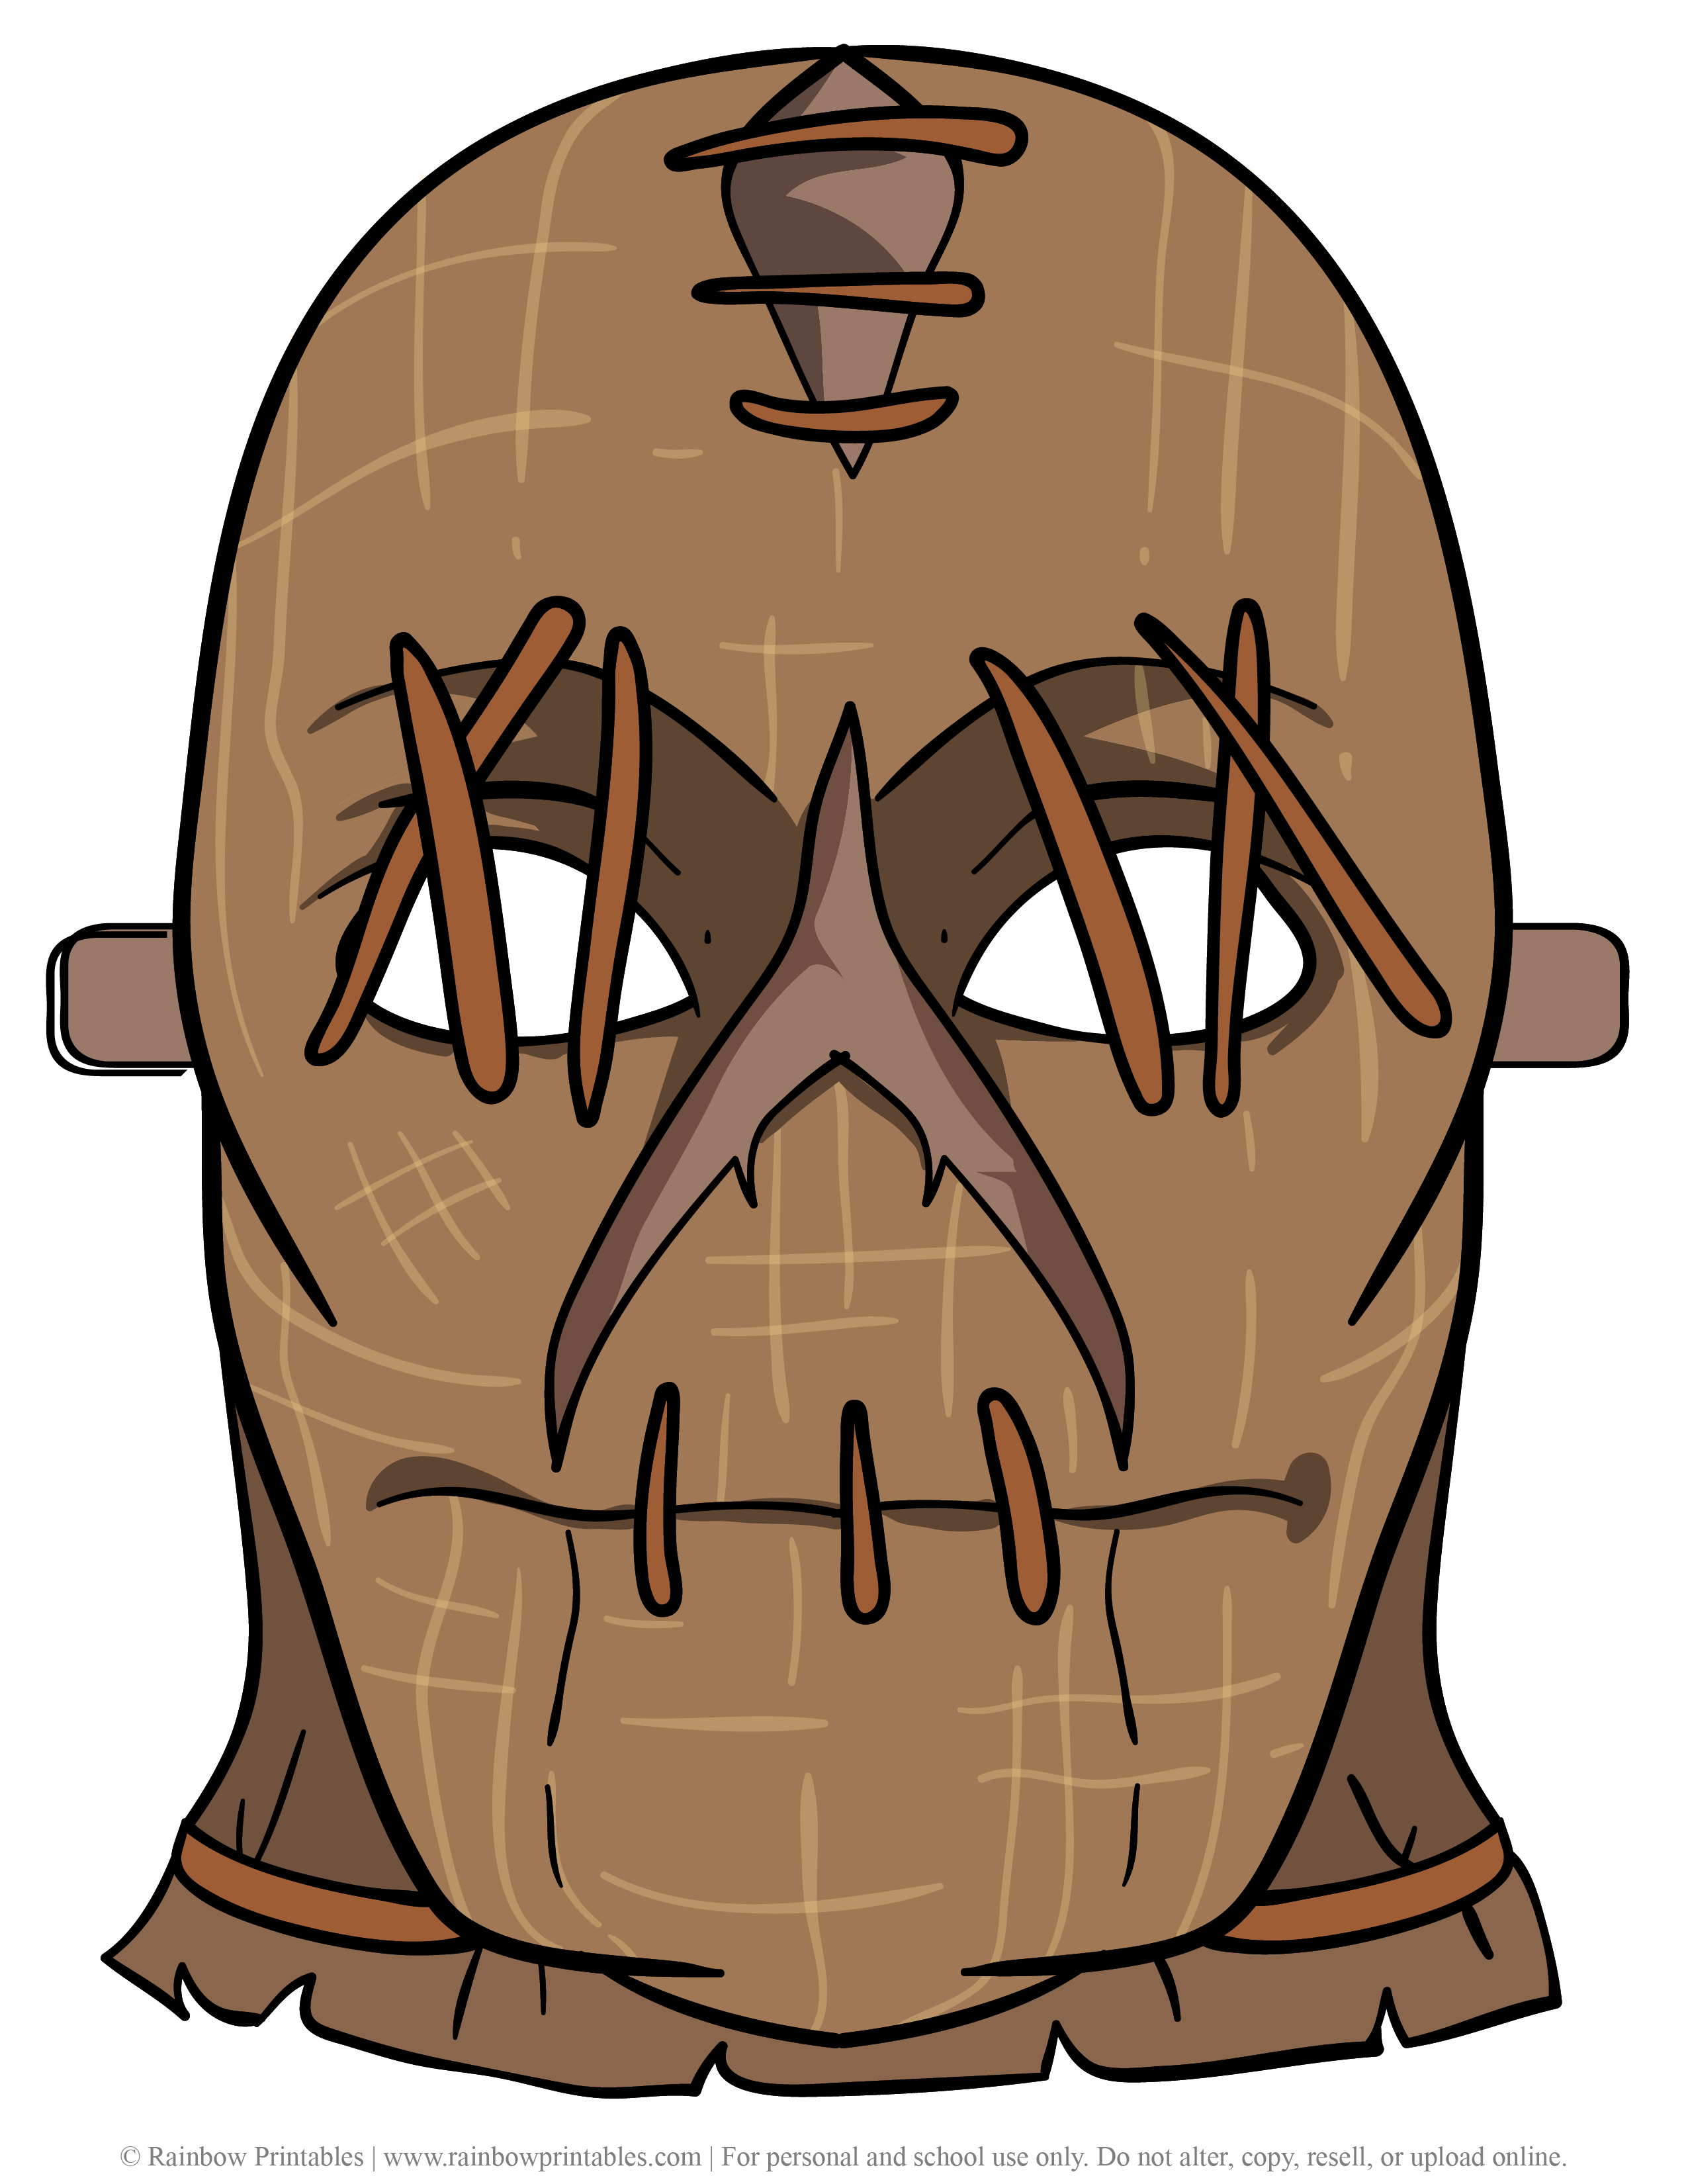 Scary Creepy Halloween Scarecrow Costume Face Mask Theater Head Covering robber ski mask Burqa Burlap Sack Sew Stitched Nightmare-02